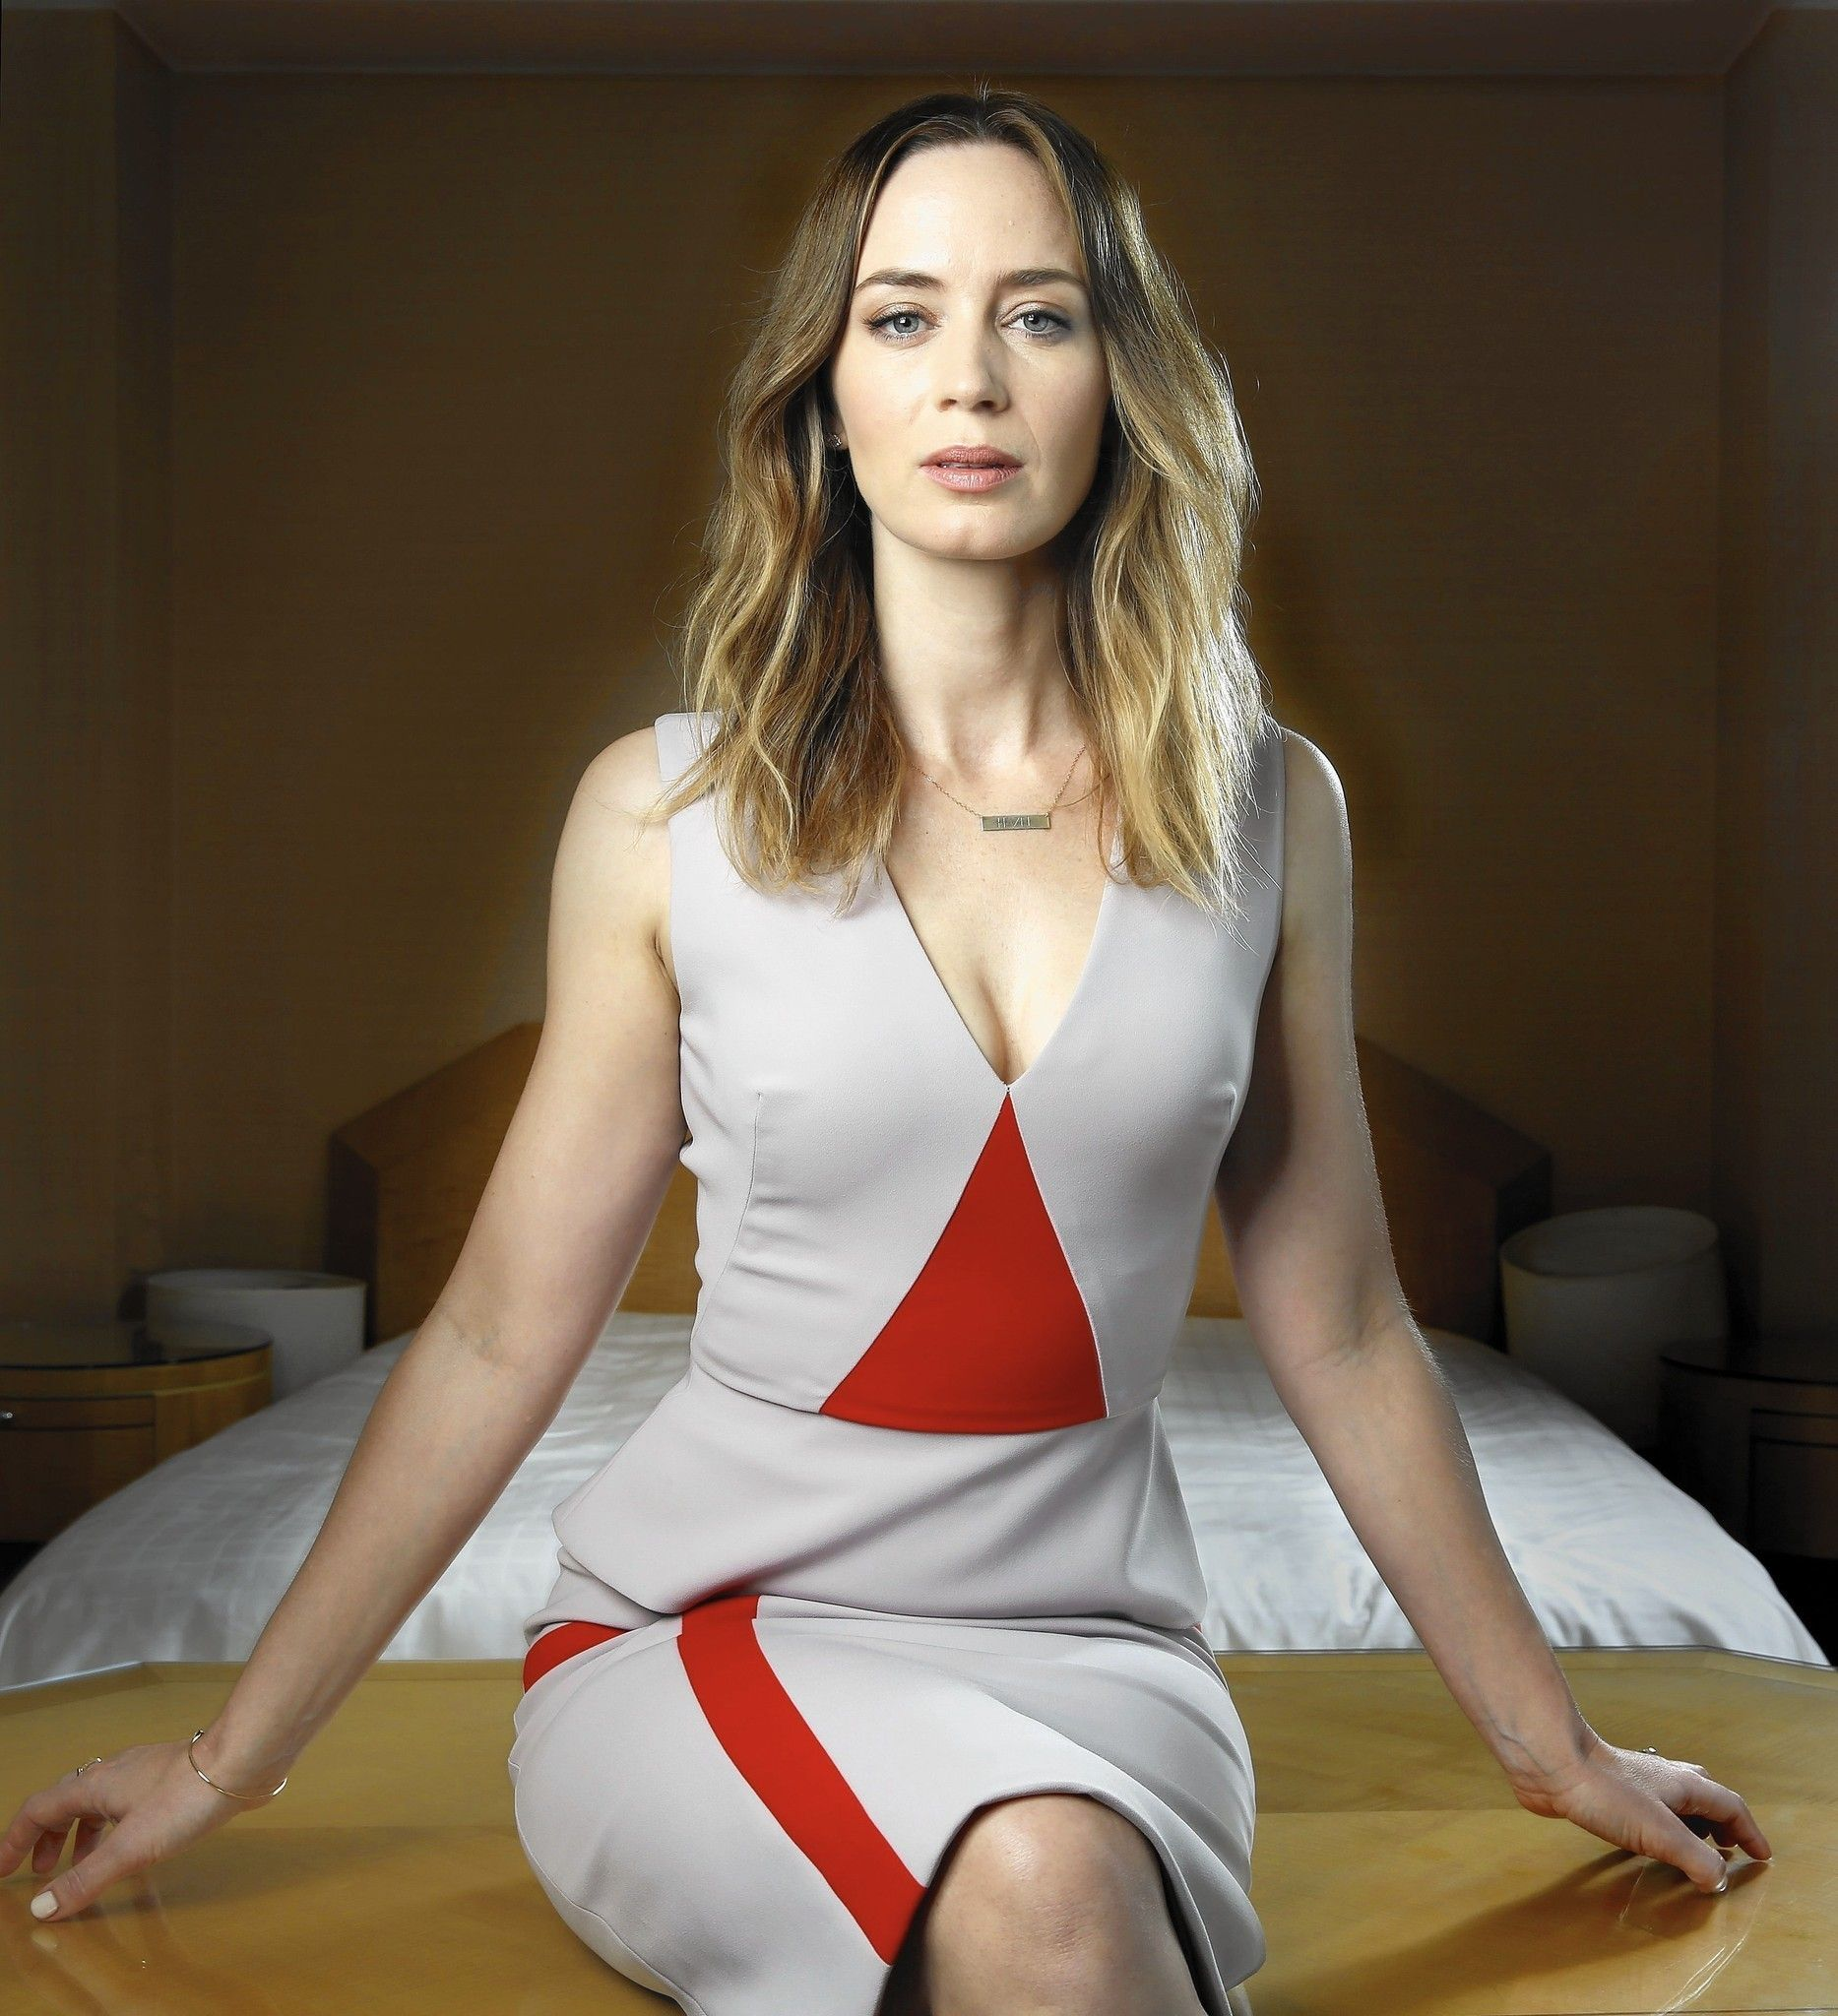 emily blunt tom cruiseemily blunt movies, emily blunt gif, emily blunt edge of tomorrow, emily blunt vk, emily blunt husband, emily blunt john krasinski, emily blunt 2017, emily blunt 2016, emily blunt young, emily blunt wiki, emily blunt kinopoisk, emily blunt фильмы, emily blunt фото, emily blunt photoshoot, emily blunt filmography, emily blunt tom cruise, emily blunt twitter, emily blunt listal, emily blunt gallery, emily blunt filmleri